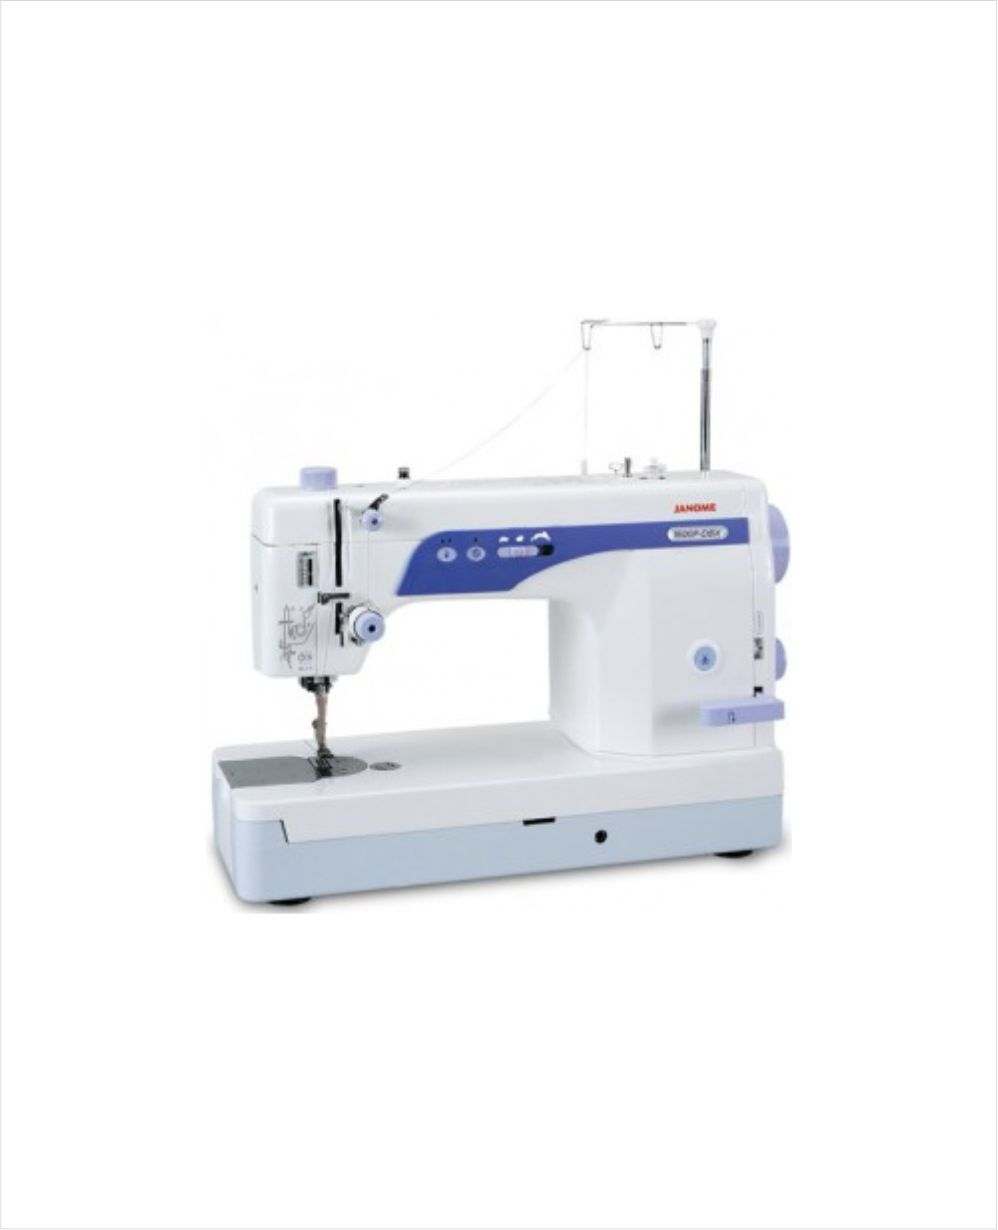 Best Sewing Machine For Quilting Beginner To Advanced